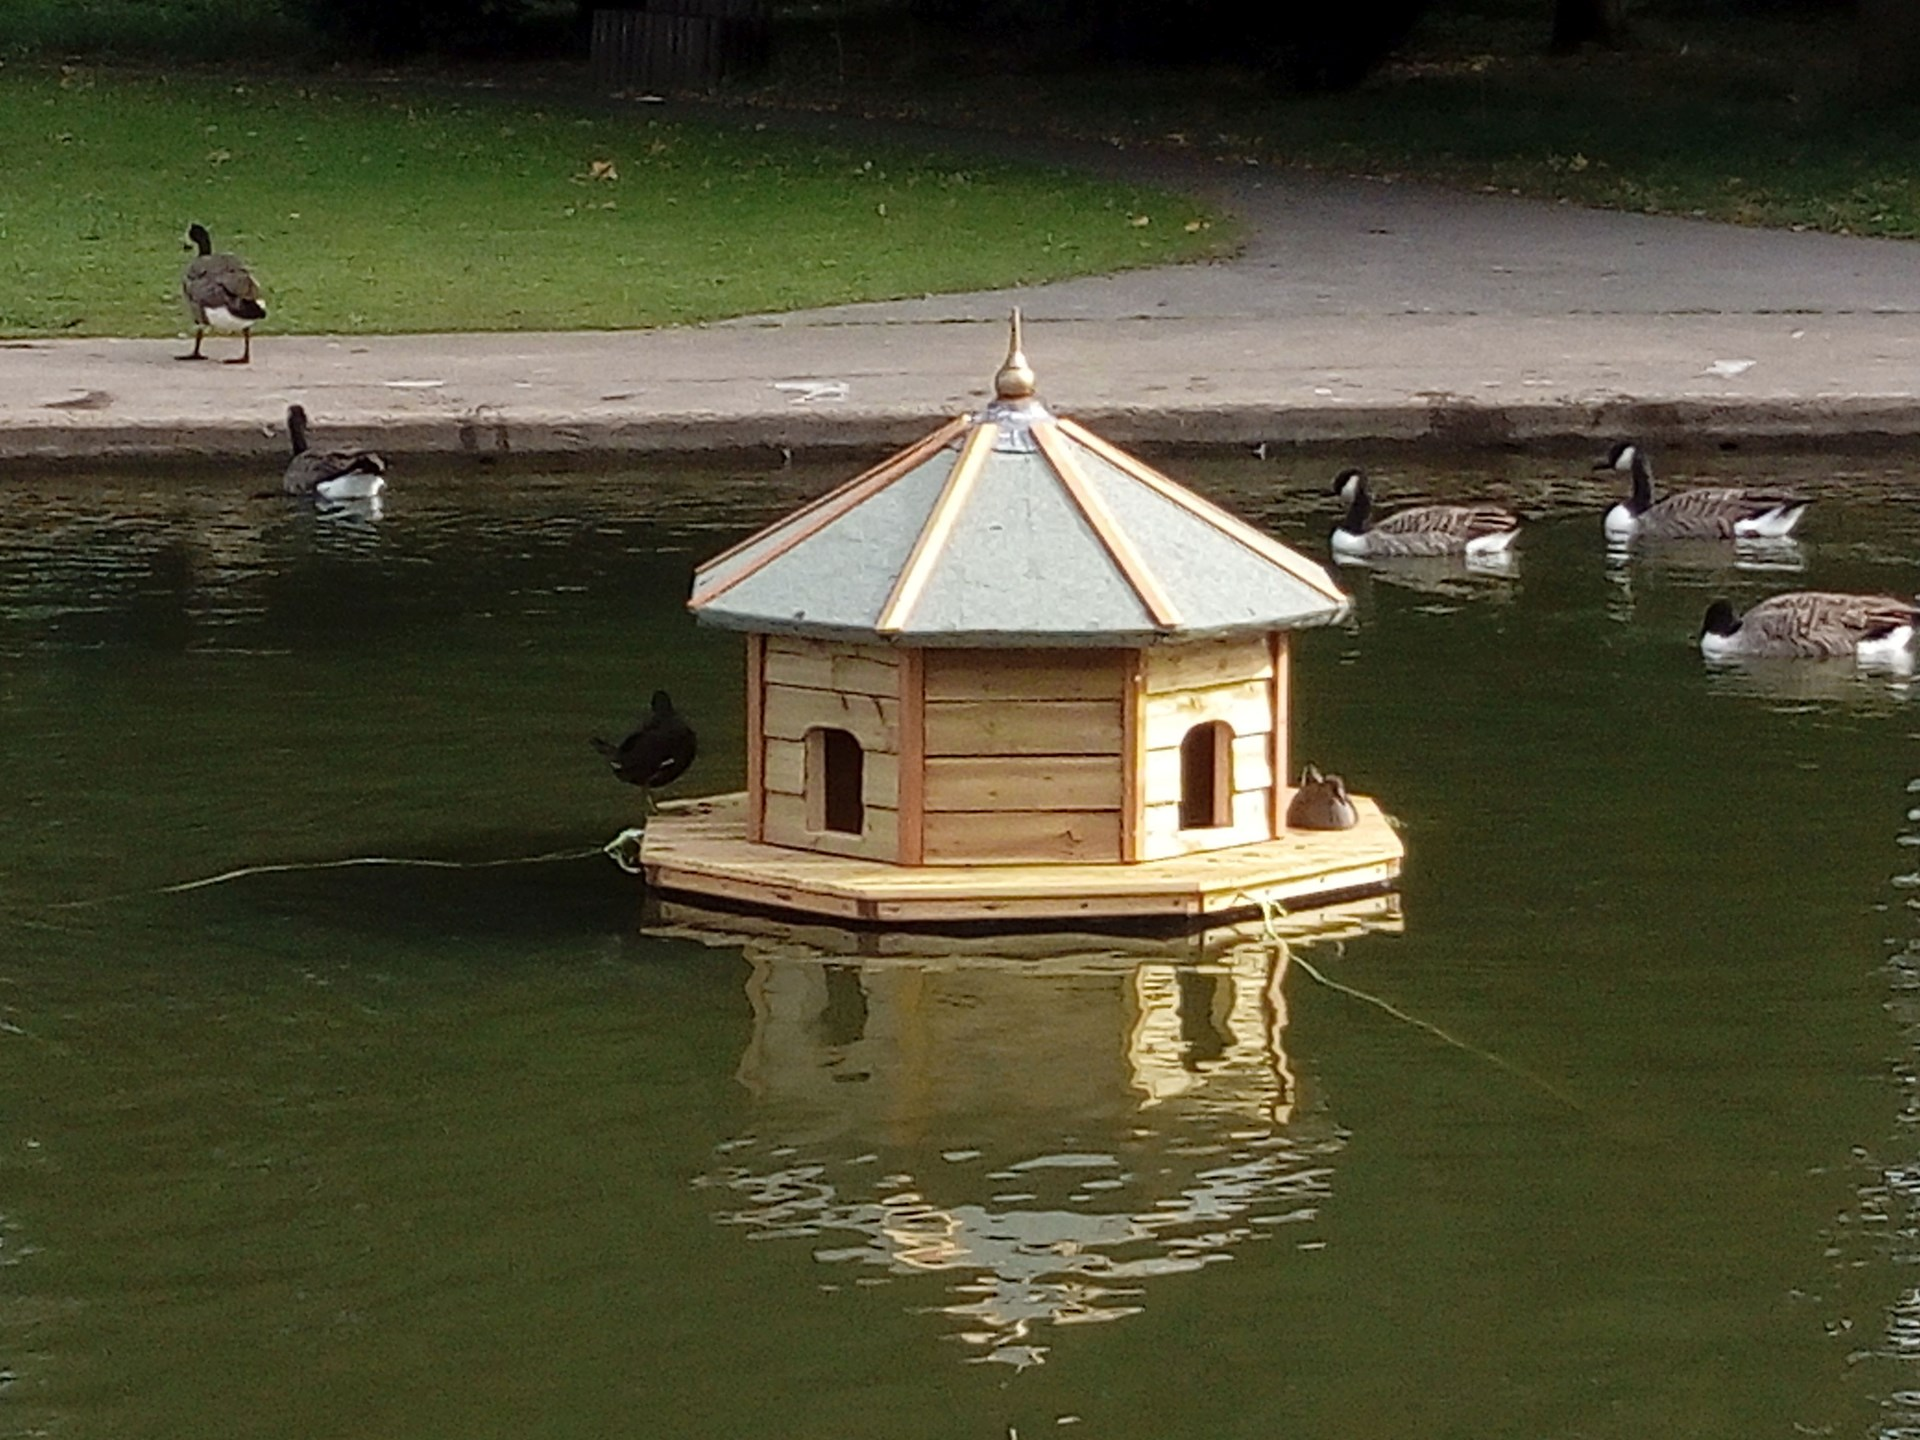 The Duck House with ducks!